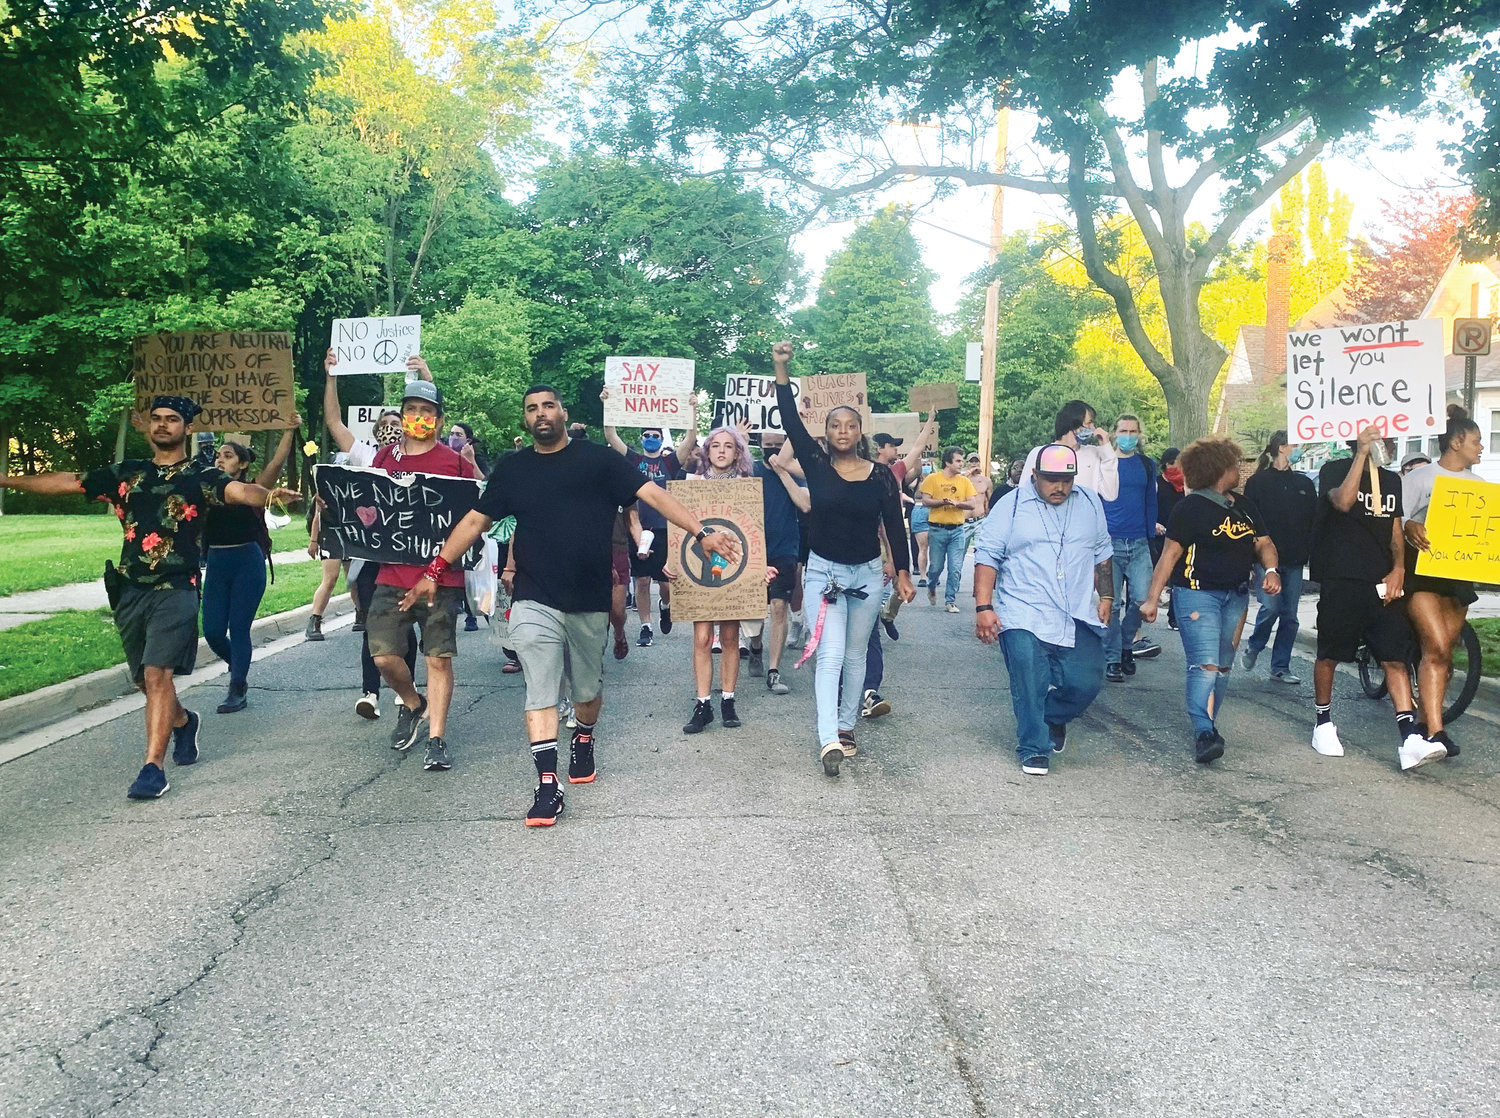 Paul Birdsong (left of center, black shirt) leads protesters in a march on Moores River Drive en route to Lansing Mayor Andy Schor's home.